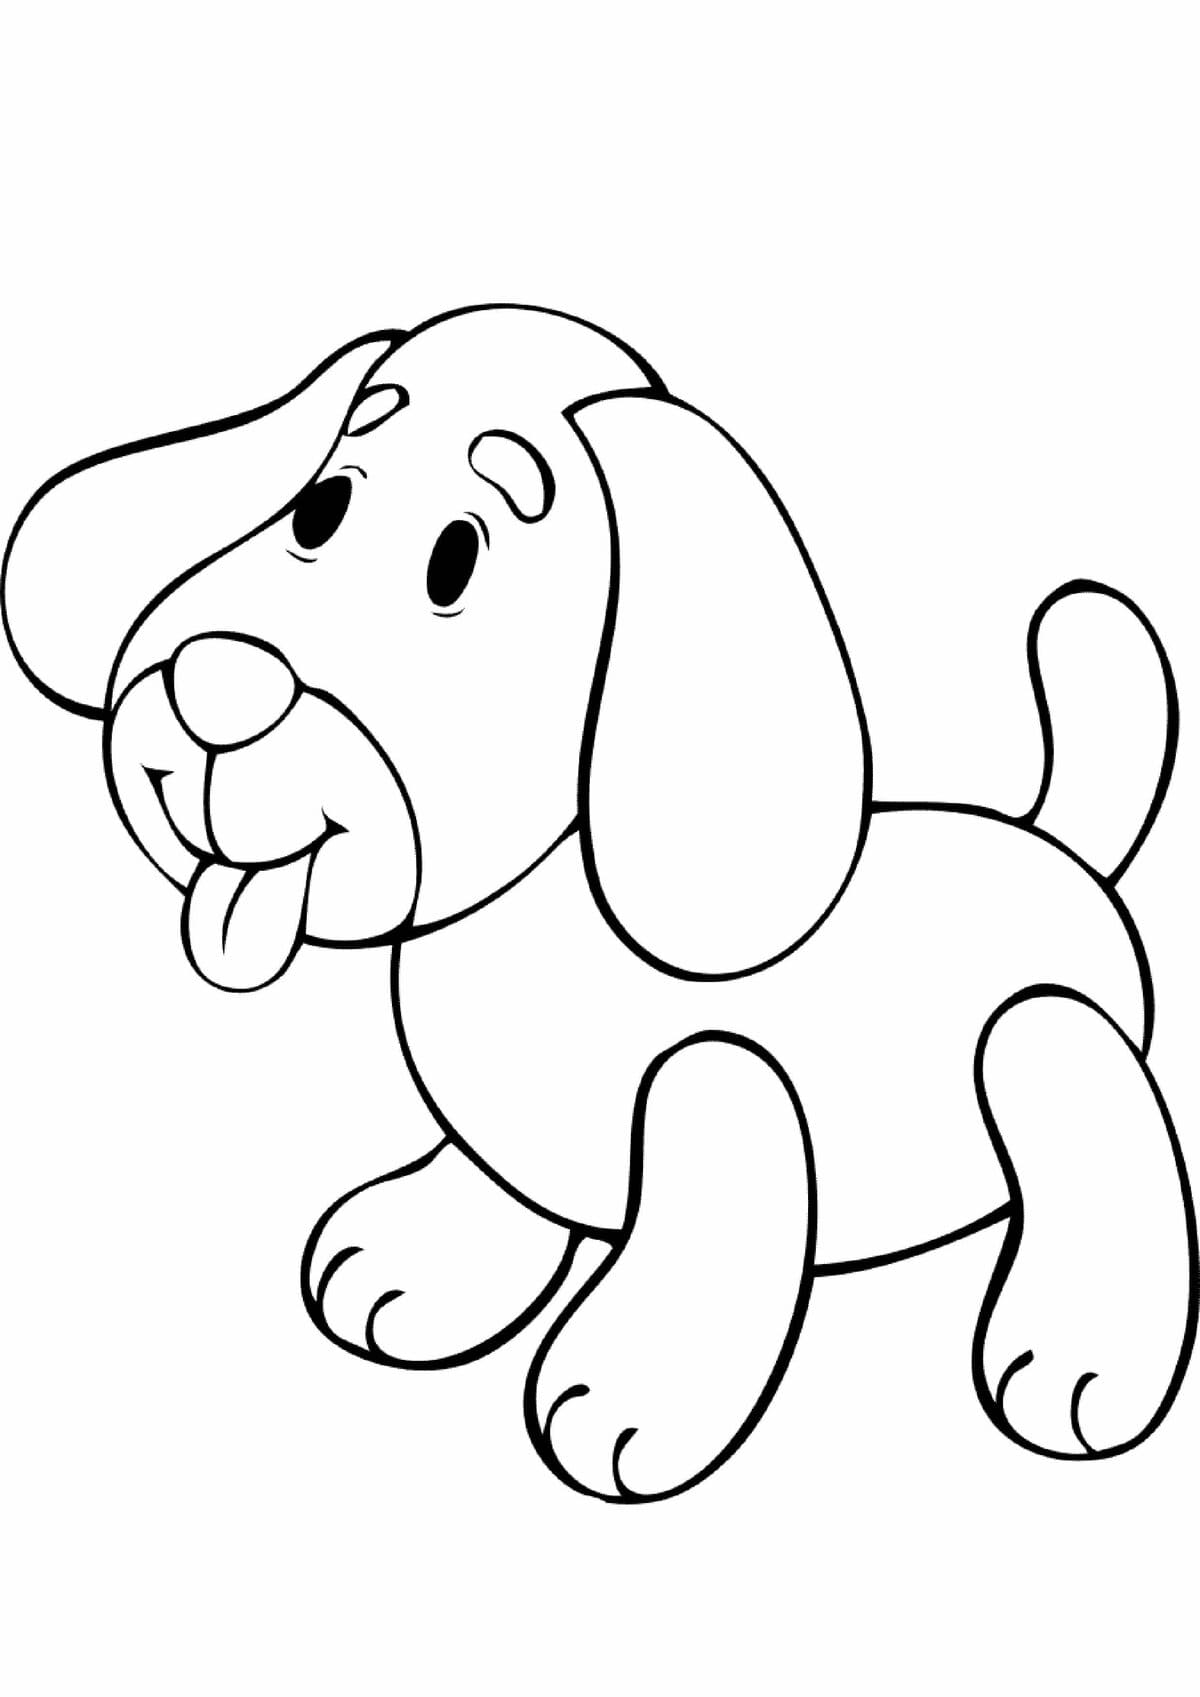 coloring pictures for 2 year olds 51 easy coloring pages for 2 year olds printable pdf olds coloring for year 2 pictures